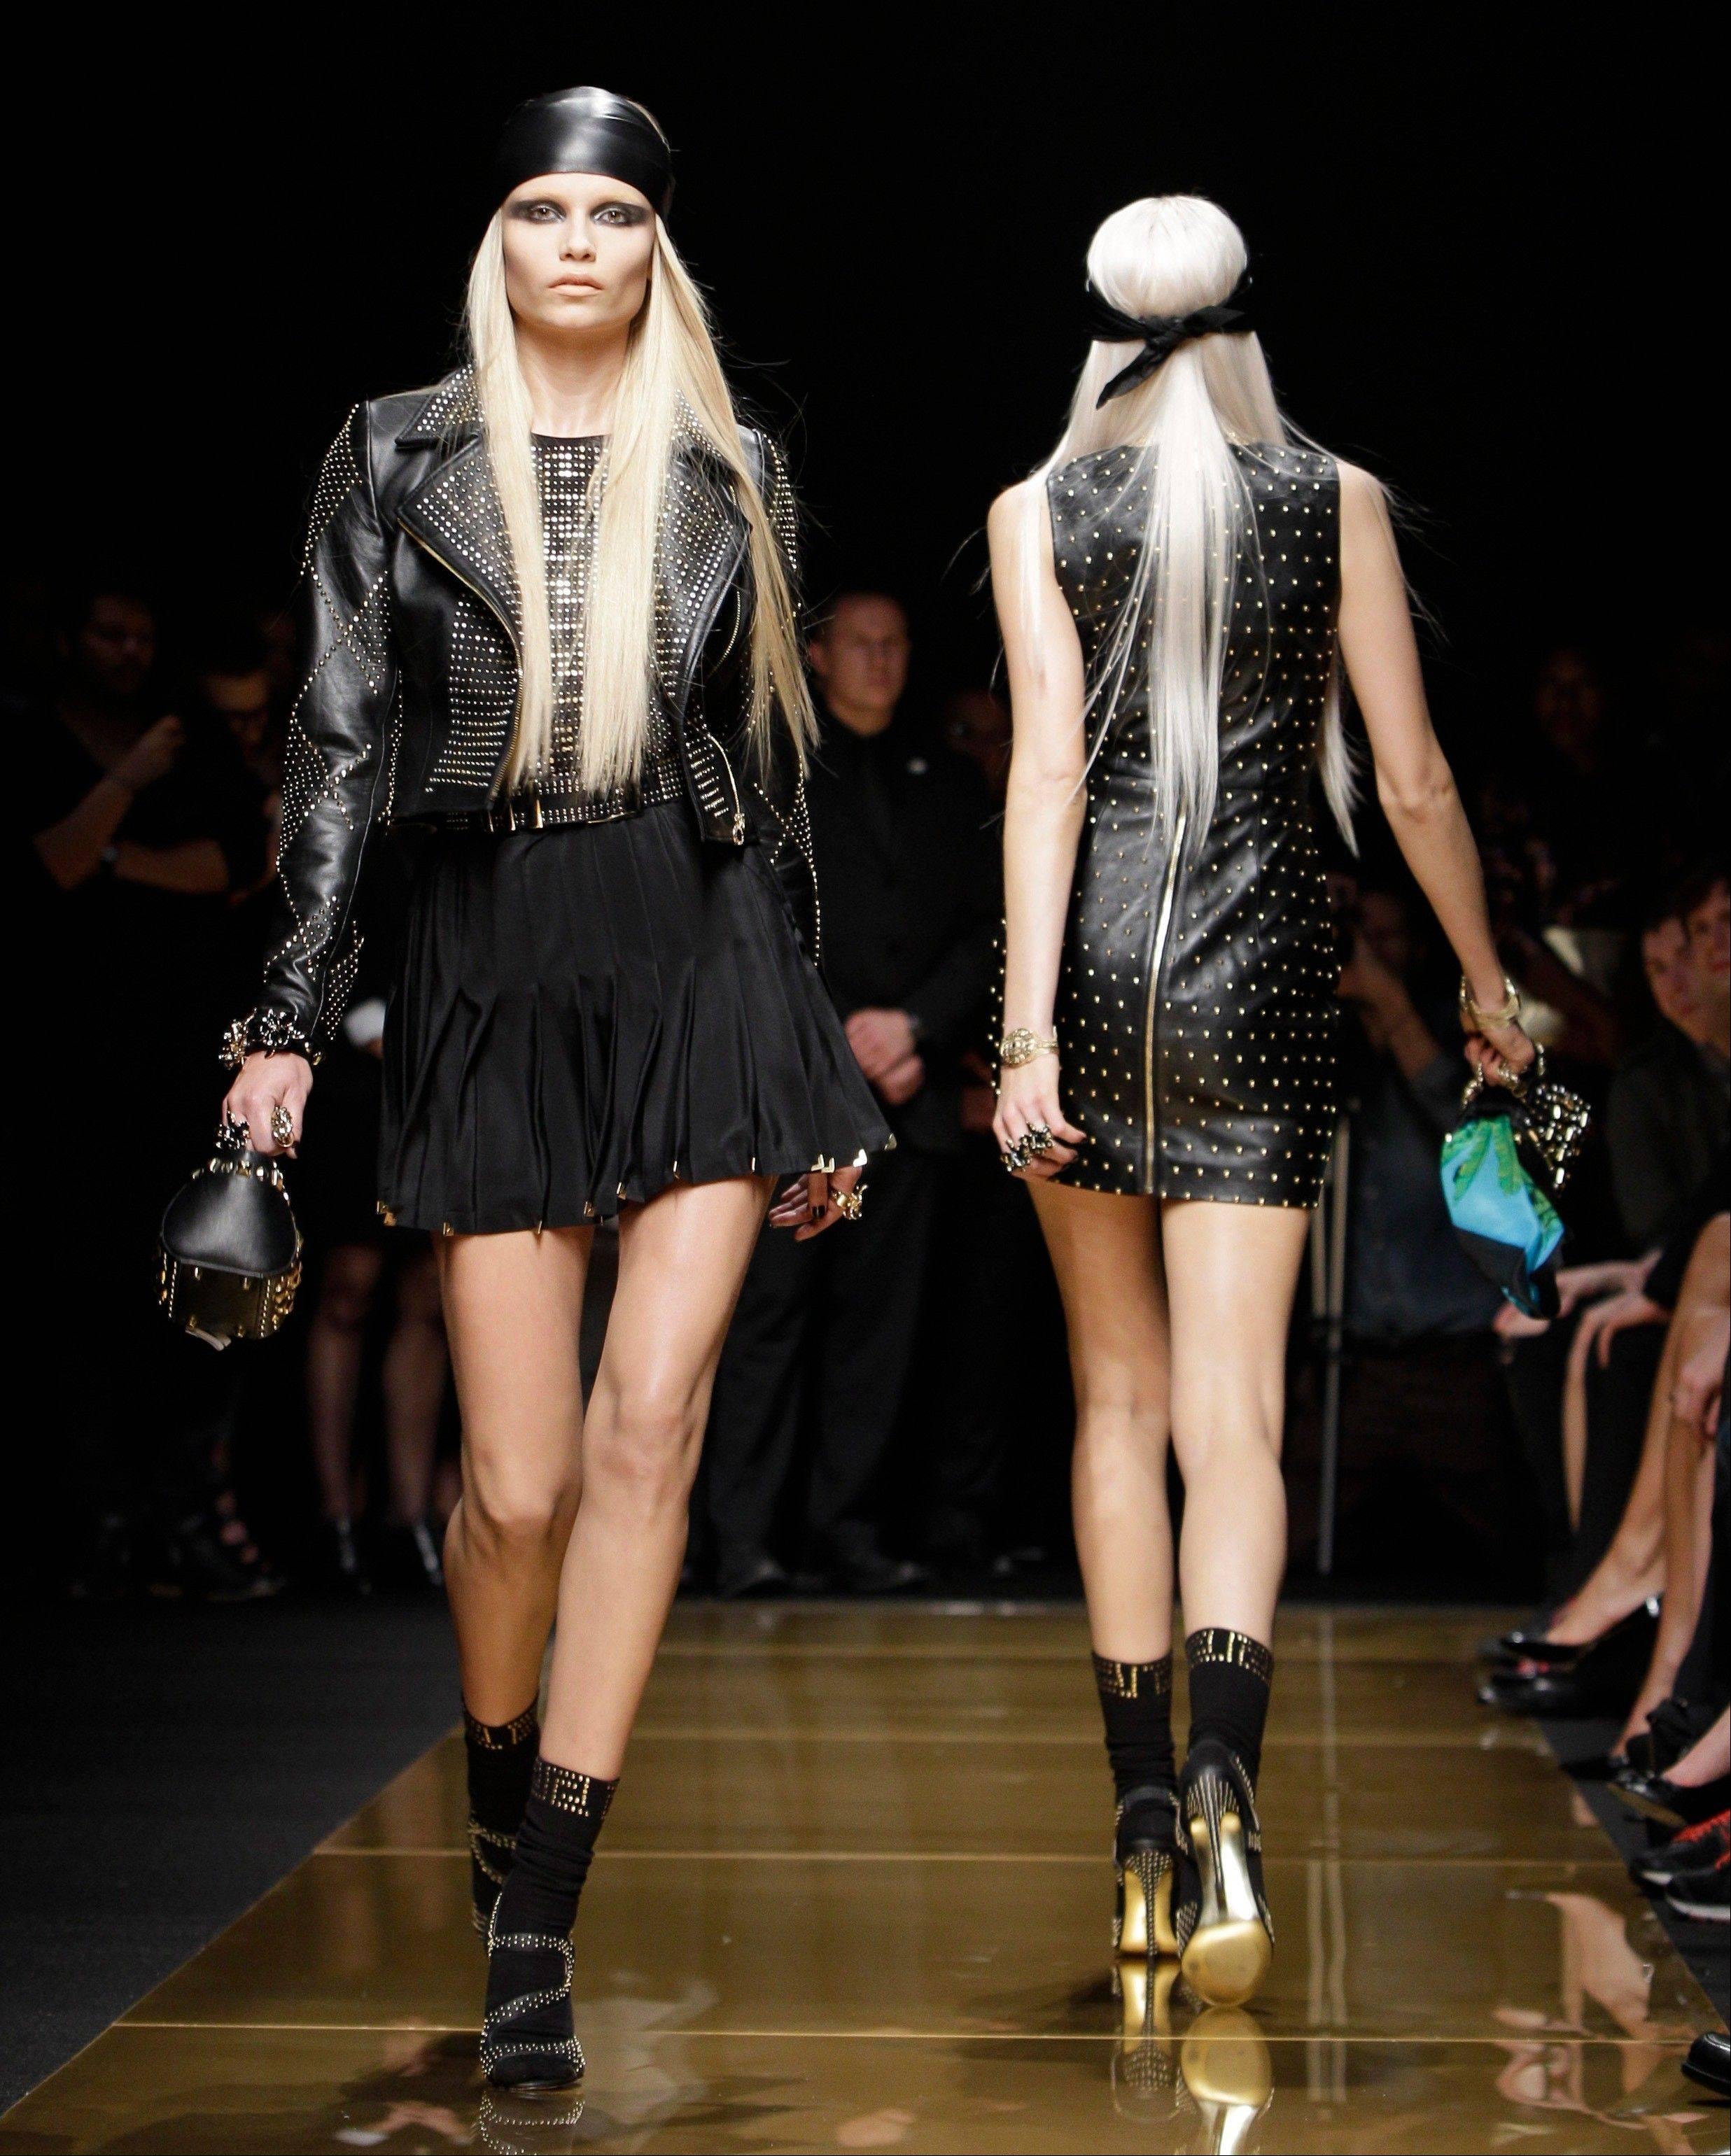 Models walk the runway during the Versace for H&M fashion show in New York.